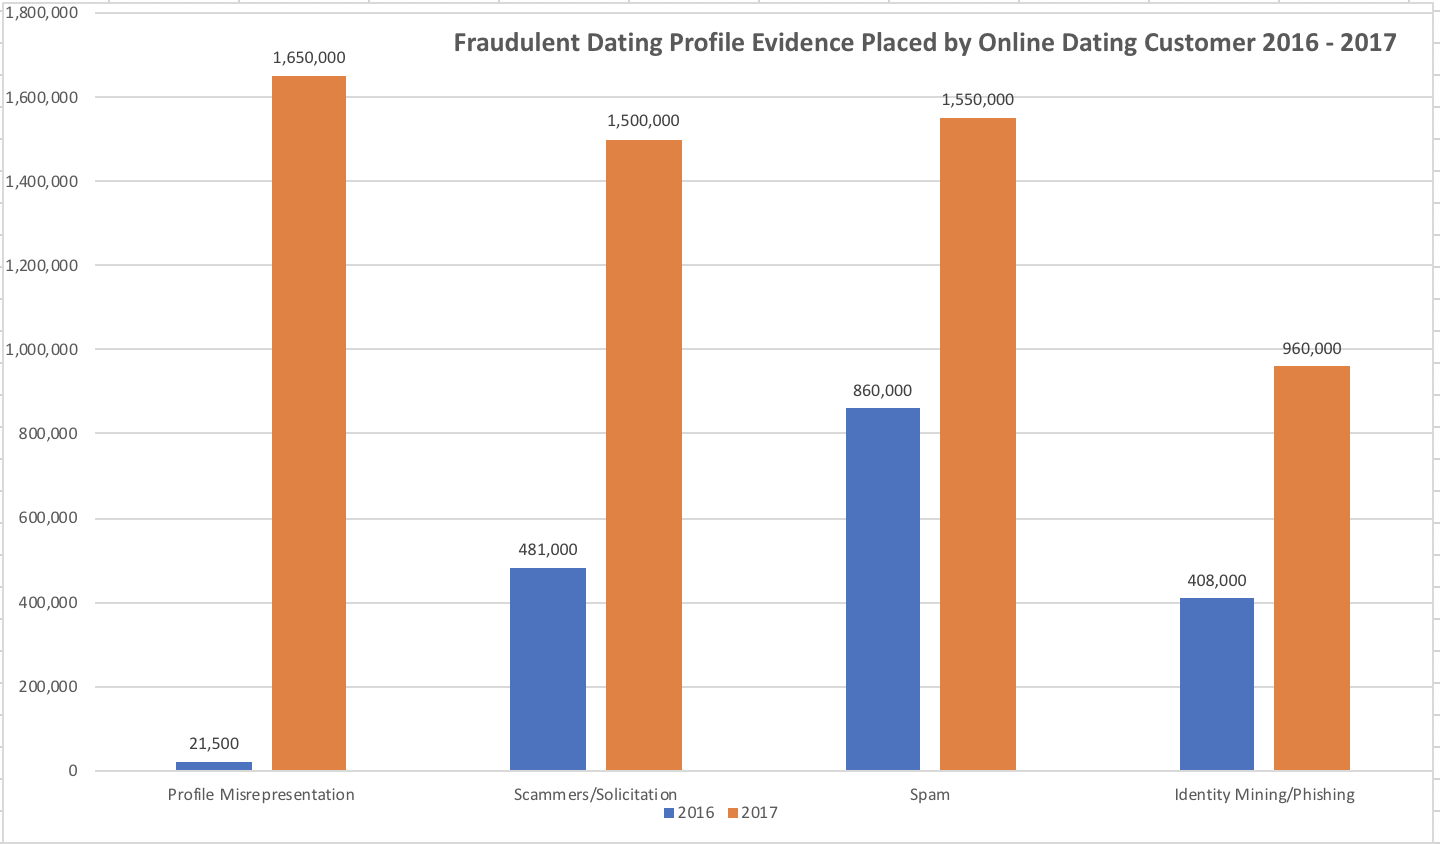 iovation_evidence_graph.png